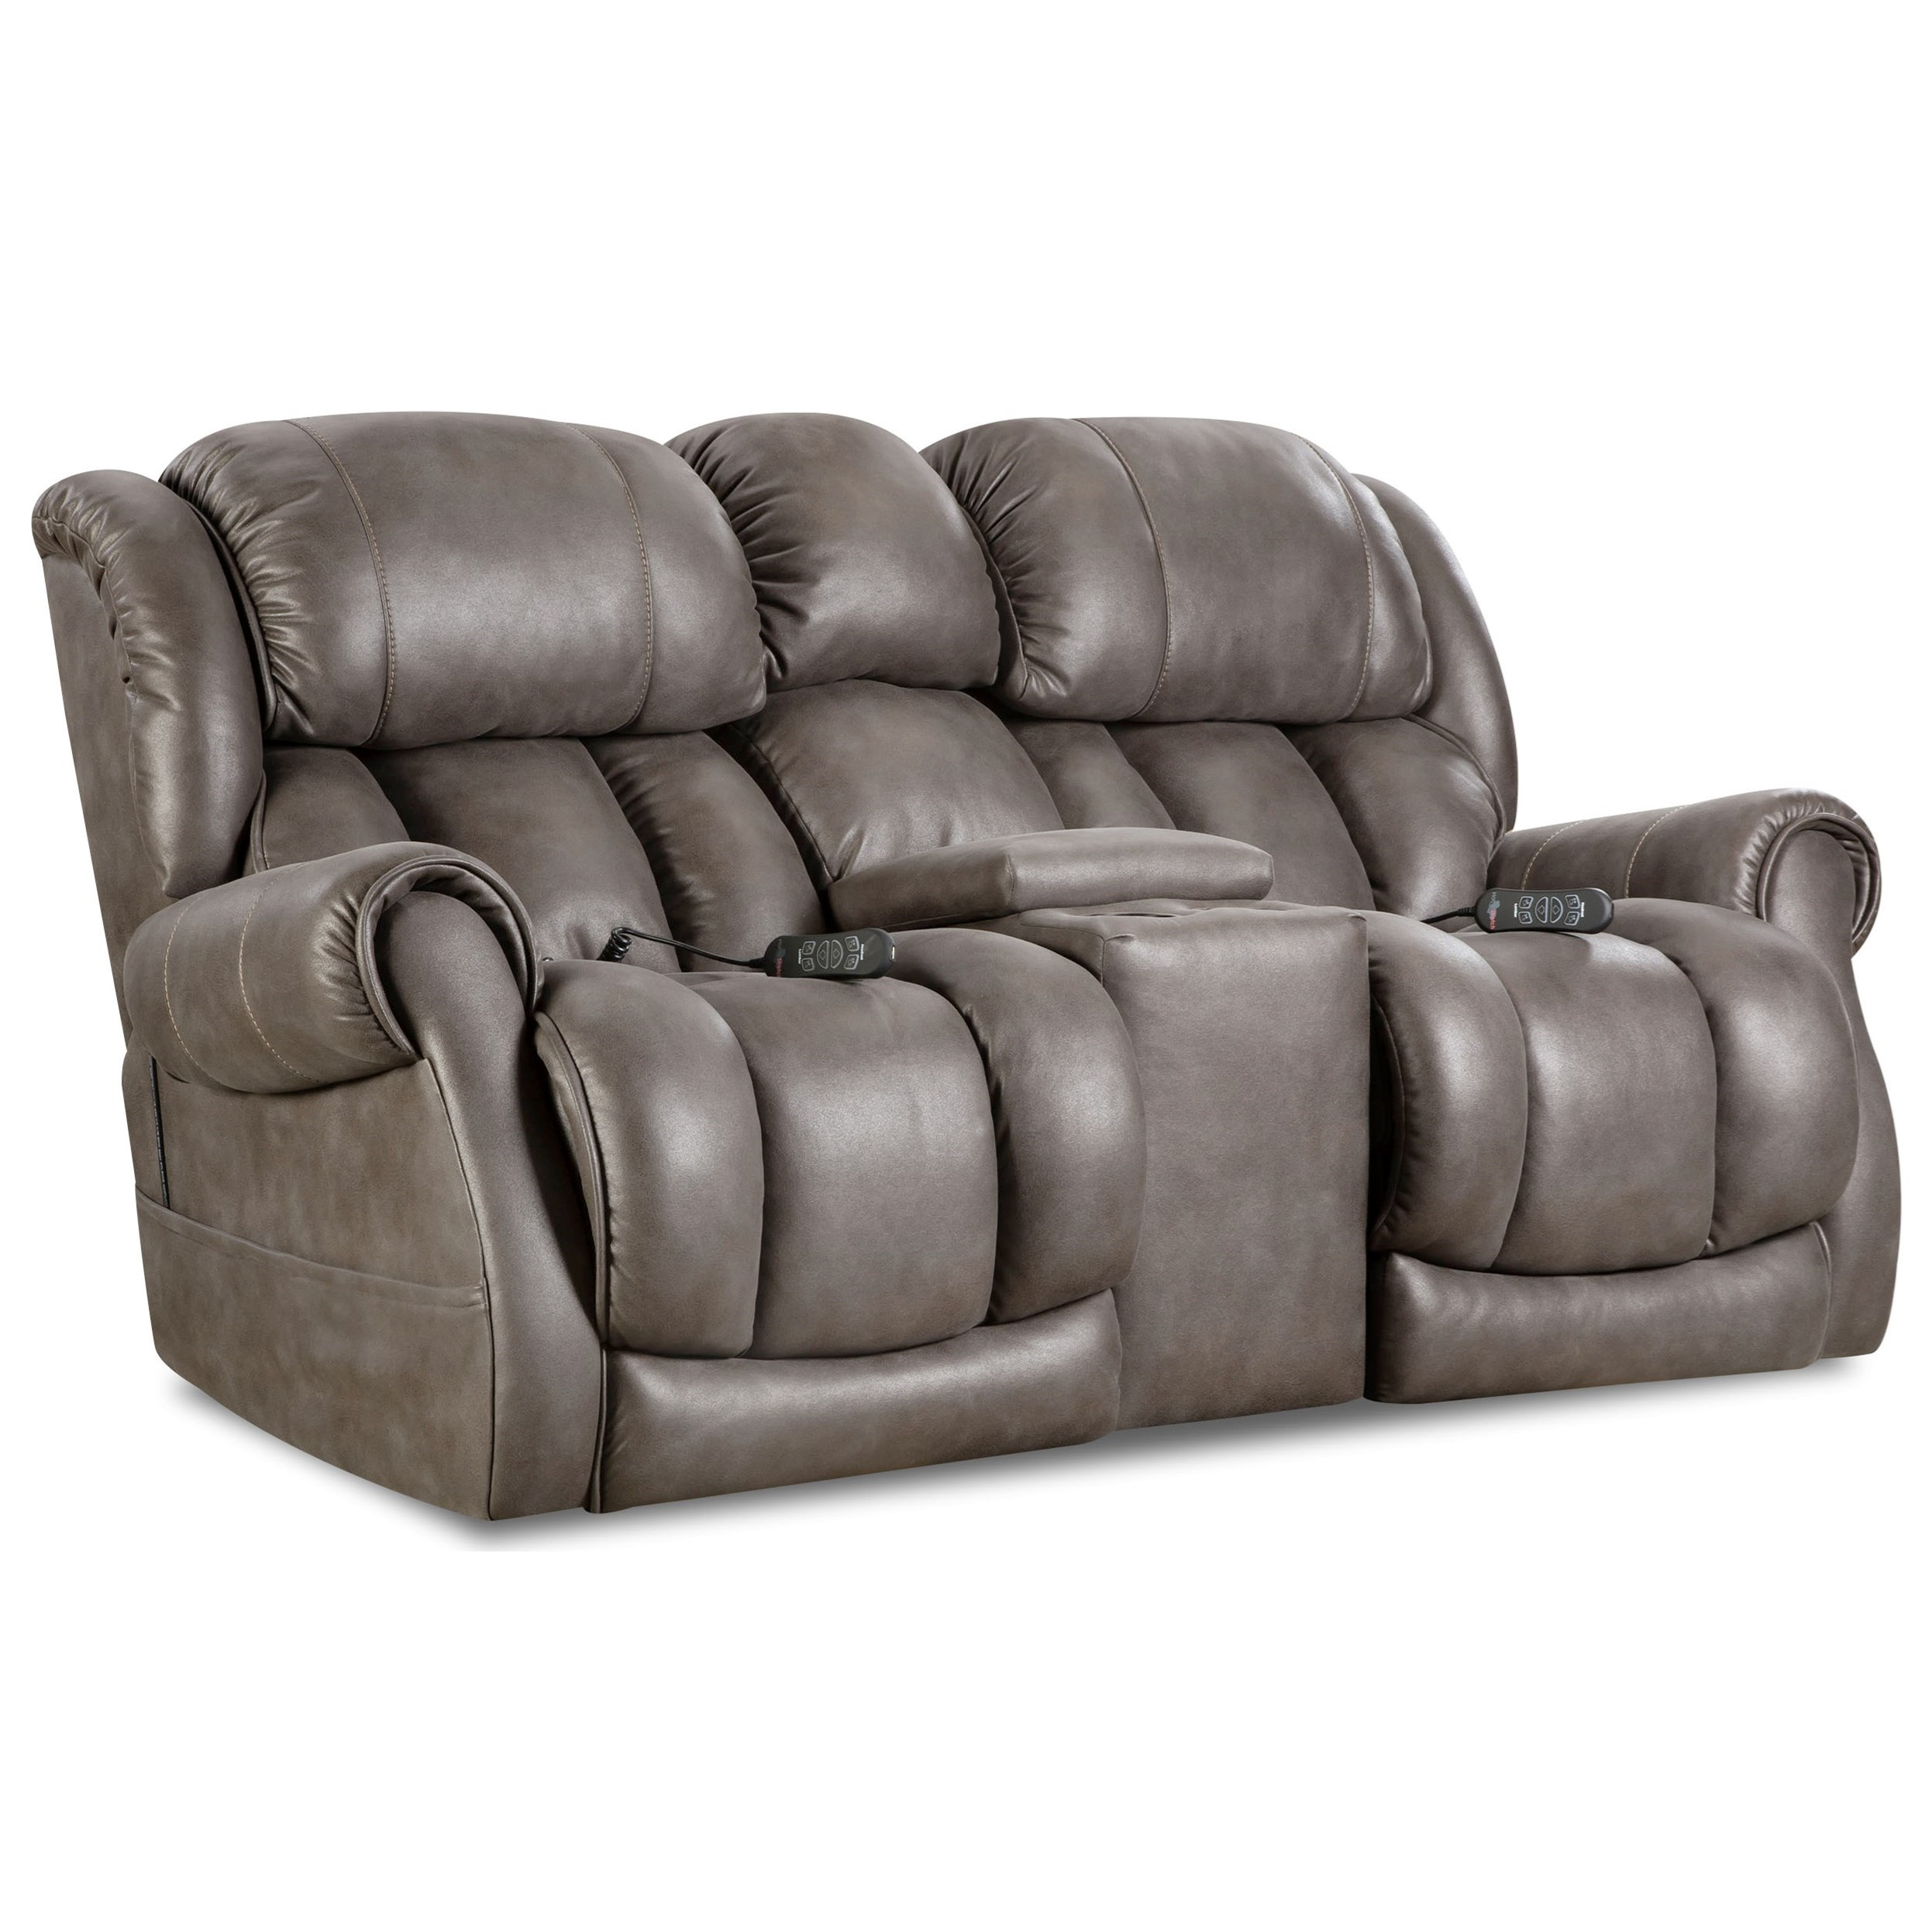 power reclining sofa with cup holders hotel istanbul expedia casual console loveseat